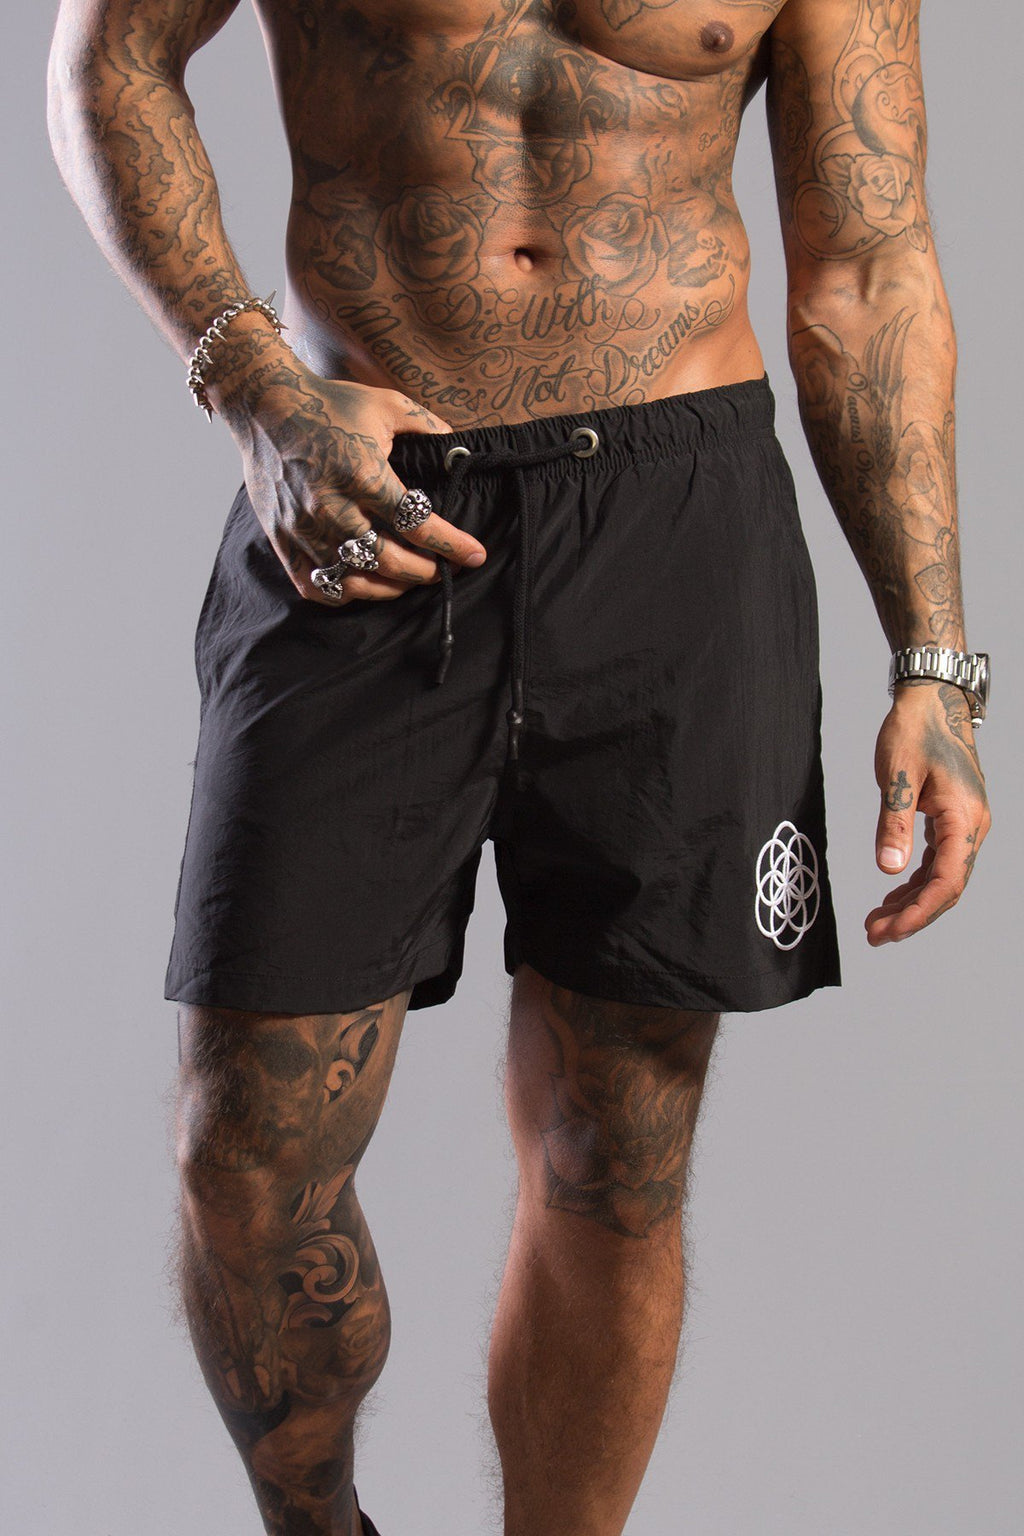 SCAR TISSUE SHORTS SCAR TISSUE BLACK SWIM SHORTS